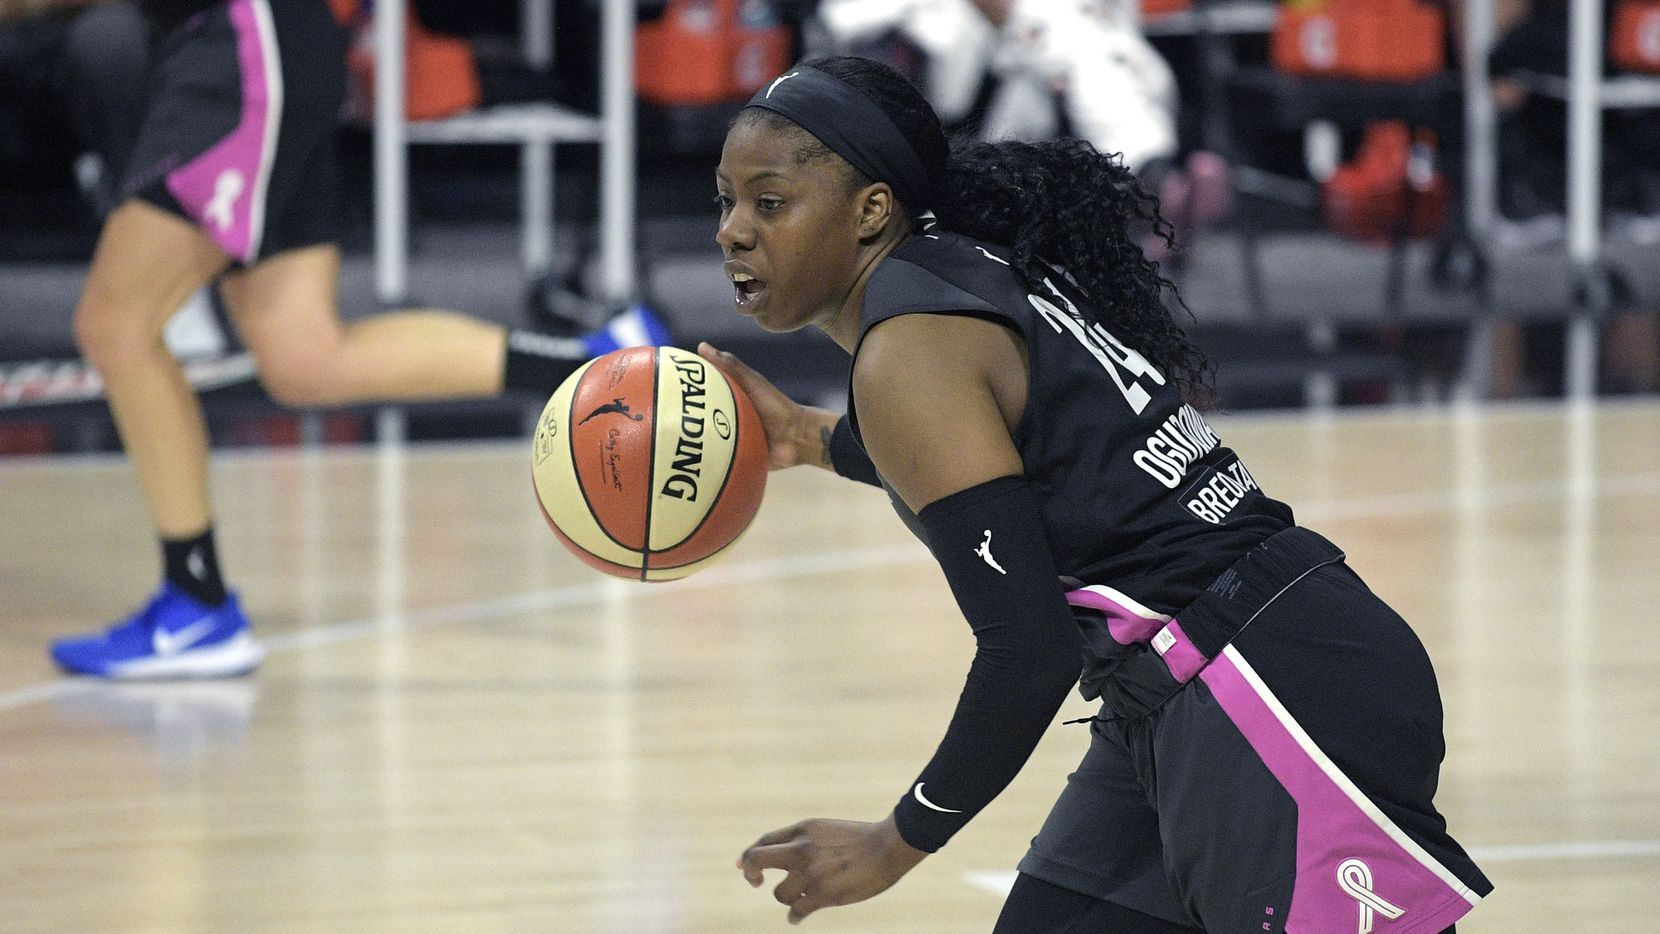 Dallas Wings guard Arike Ogunbowale (24) pushes the ball up the court during the first half of a WNBA basketball game against the Las Vegas Aces, Tuesday, Aug. 25, 2020, in Bradenton, Fla.